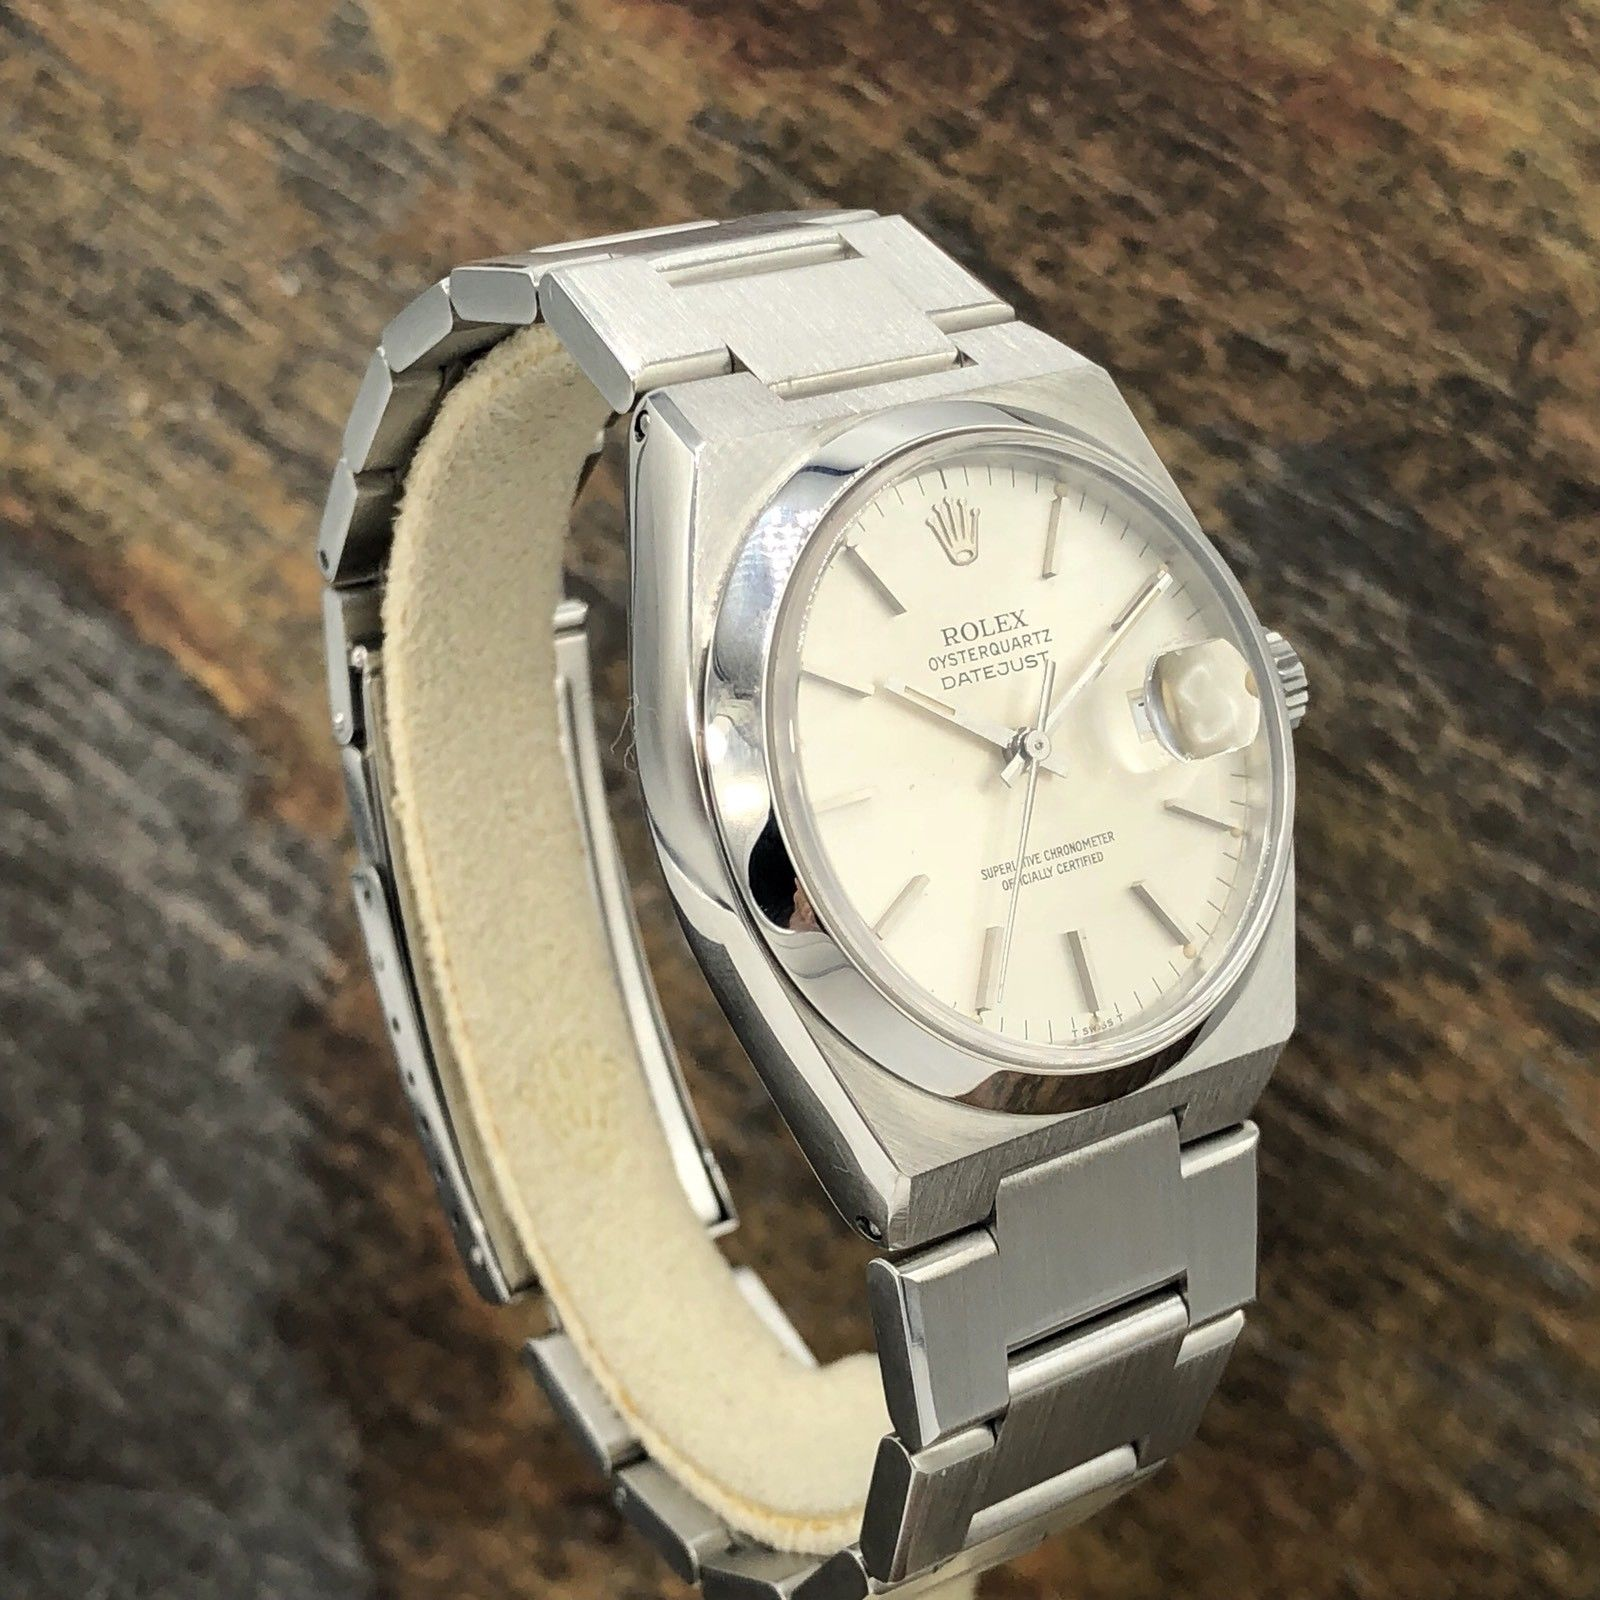 Vintage rolex datejust oyster quartz 17000 mint condition awadwatches for Vintage rolex oyster